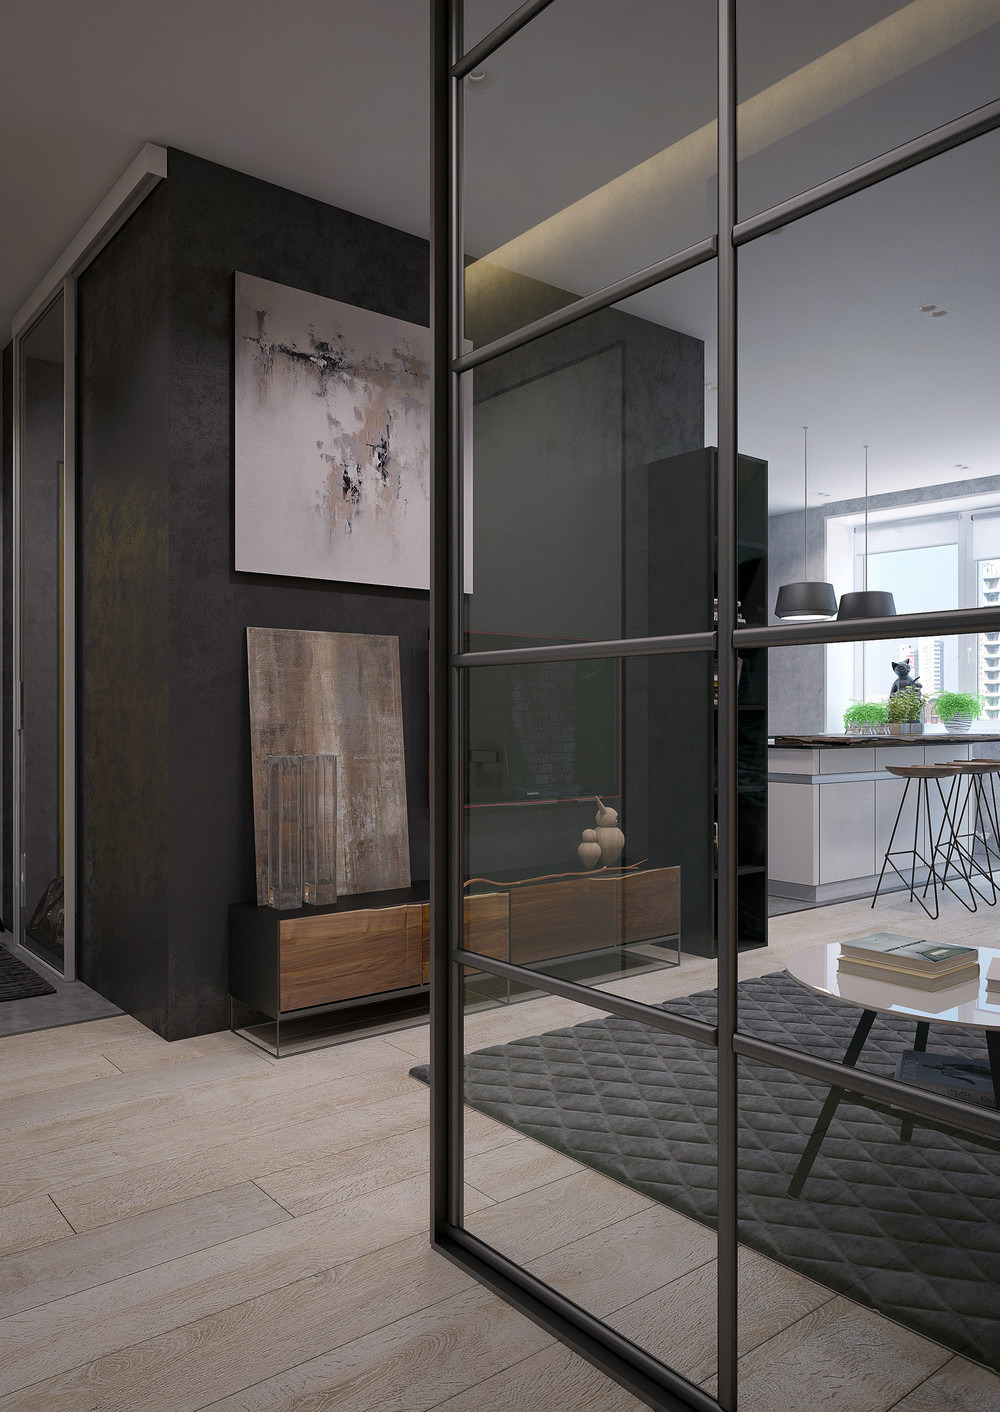 Interior Glass Walls for Homes Awesome Two Sleek Apartments with Interior Glass Walls